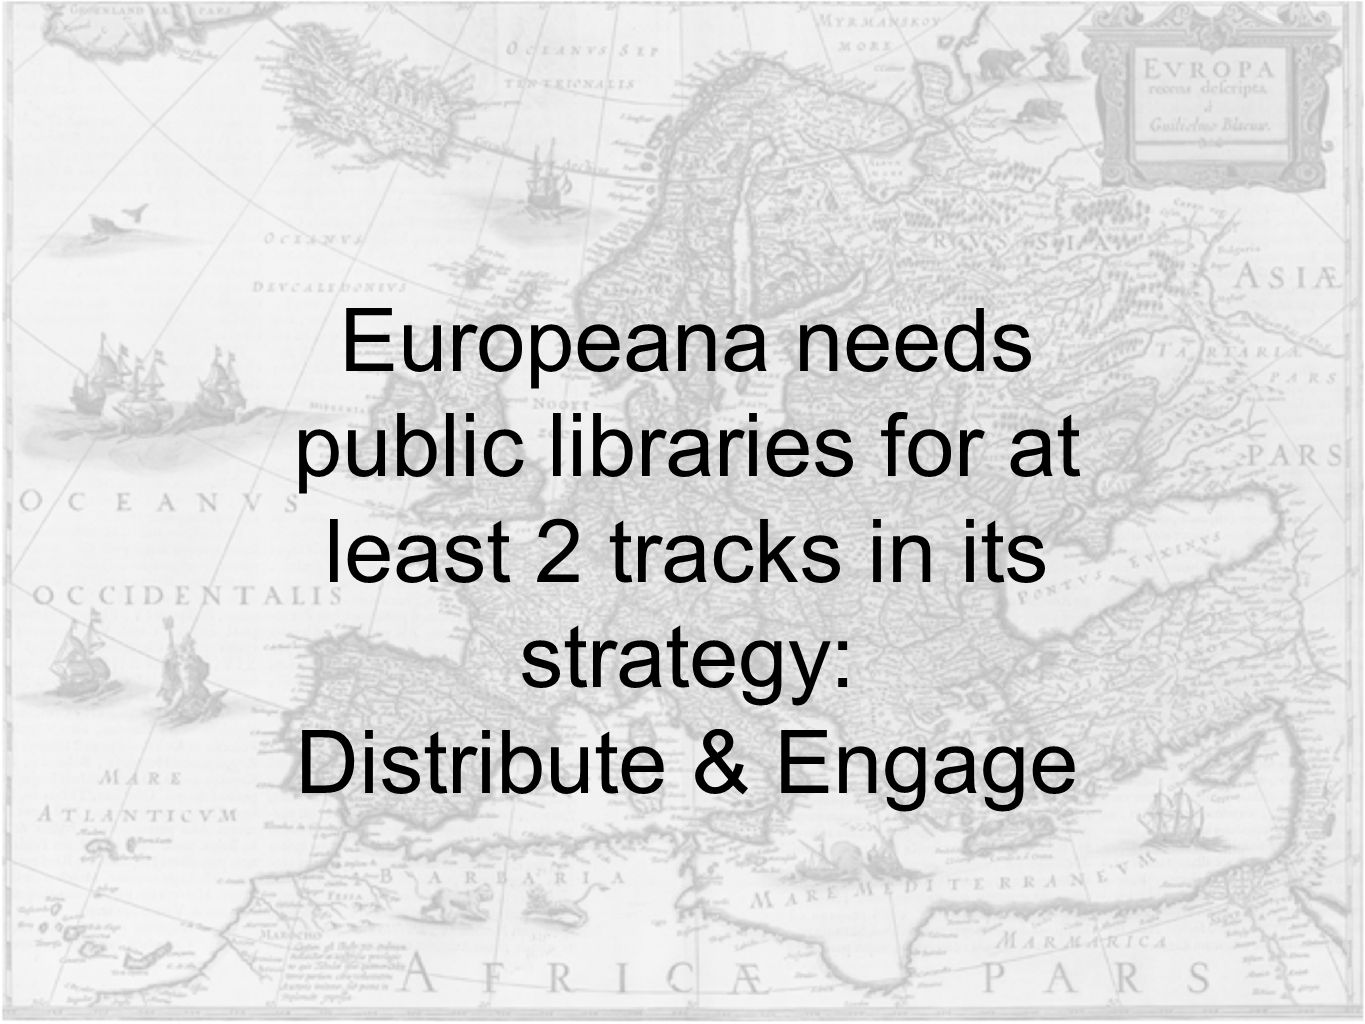 Europeana needs public libraries for at least 2 tracks in its strategy: Distribute & Engage